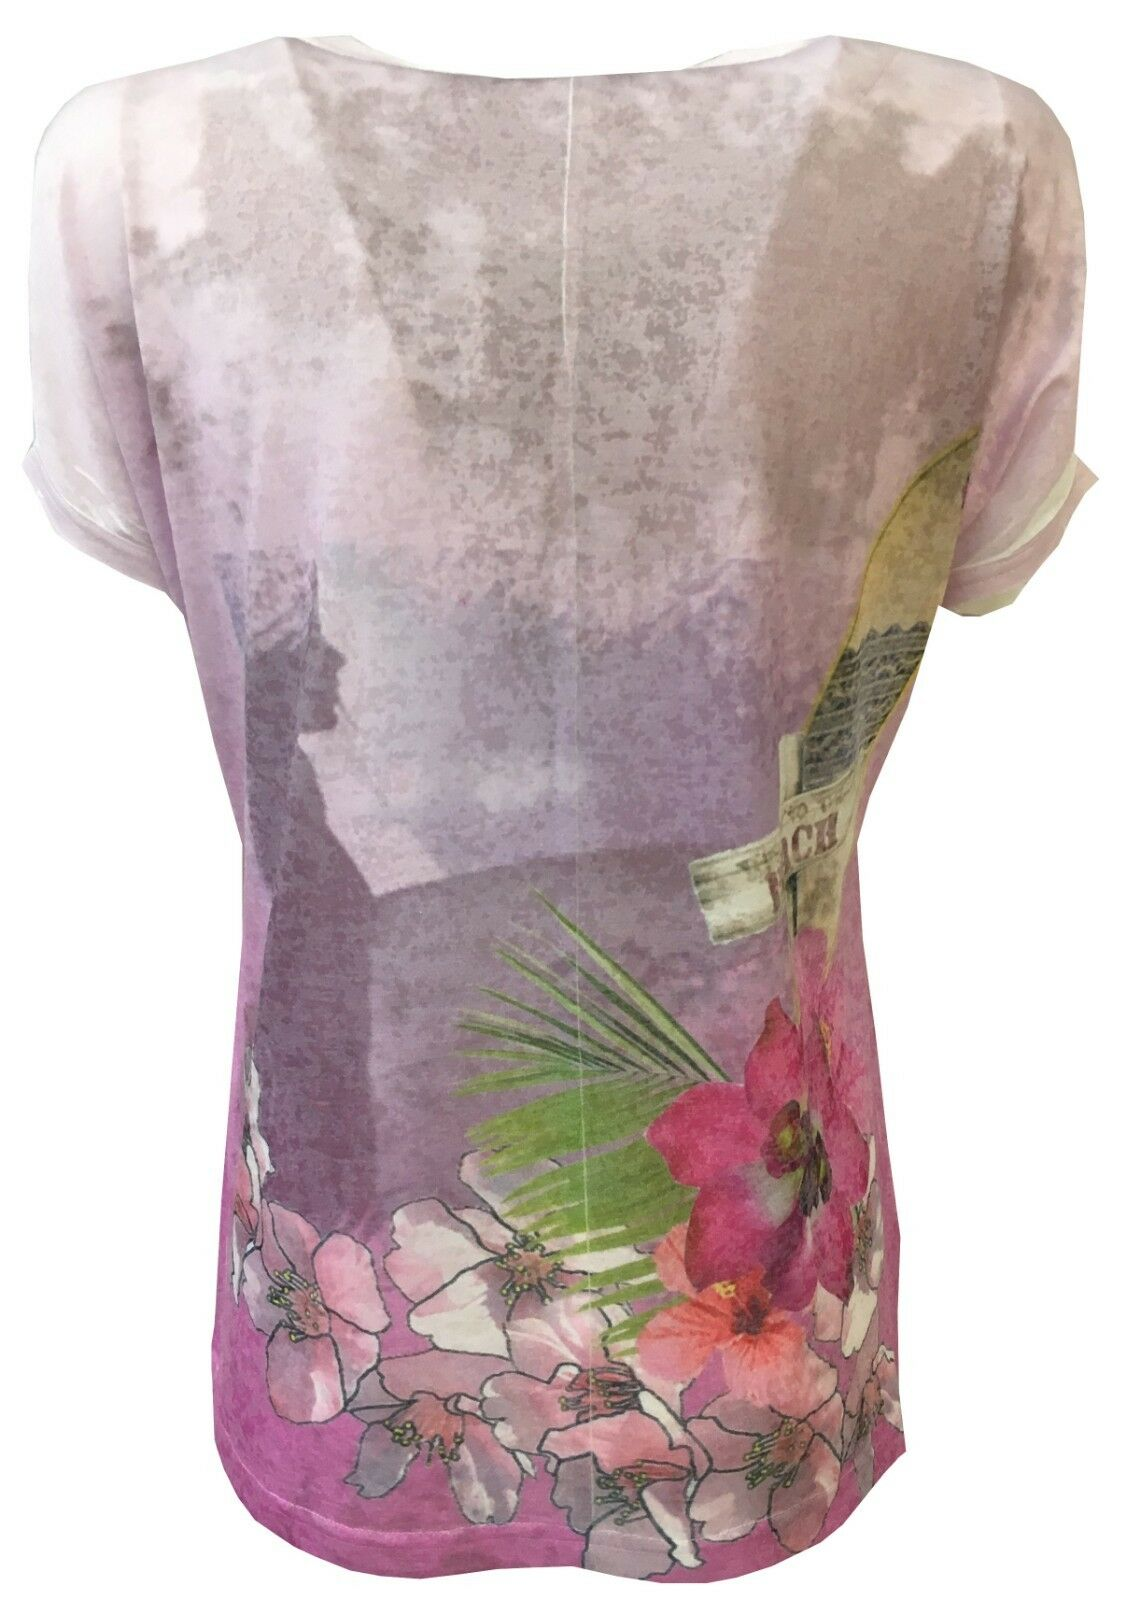 TWENTY EASY by KAOS t- t- t- shirt donna 82% poliestere 18% viscosa MADE IN ITALY 93ae51